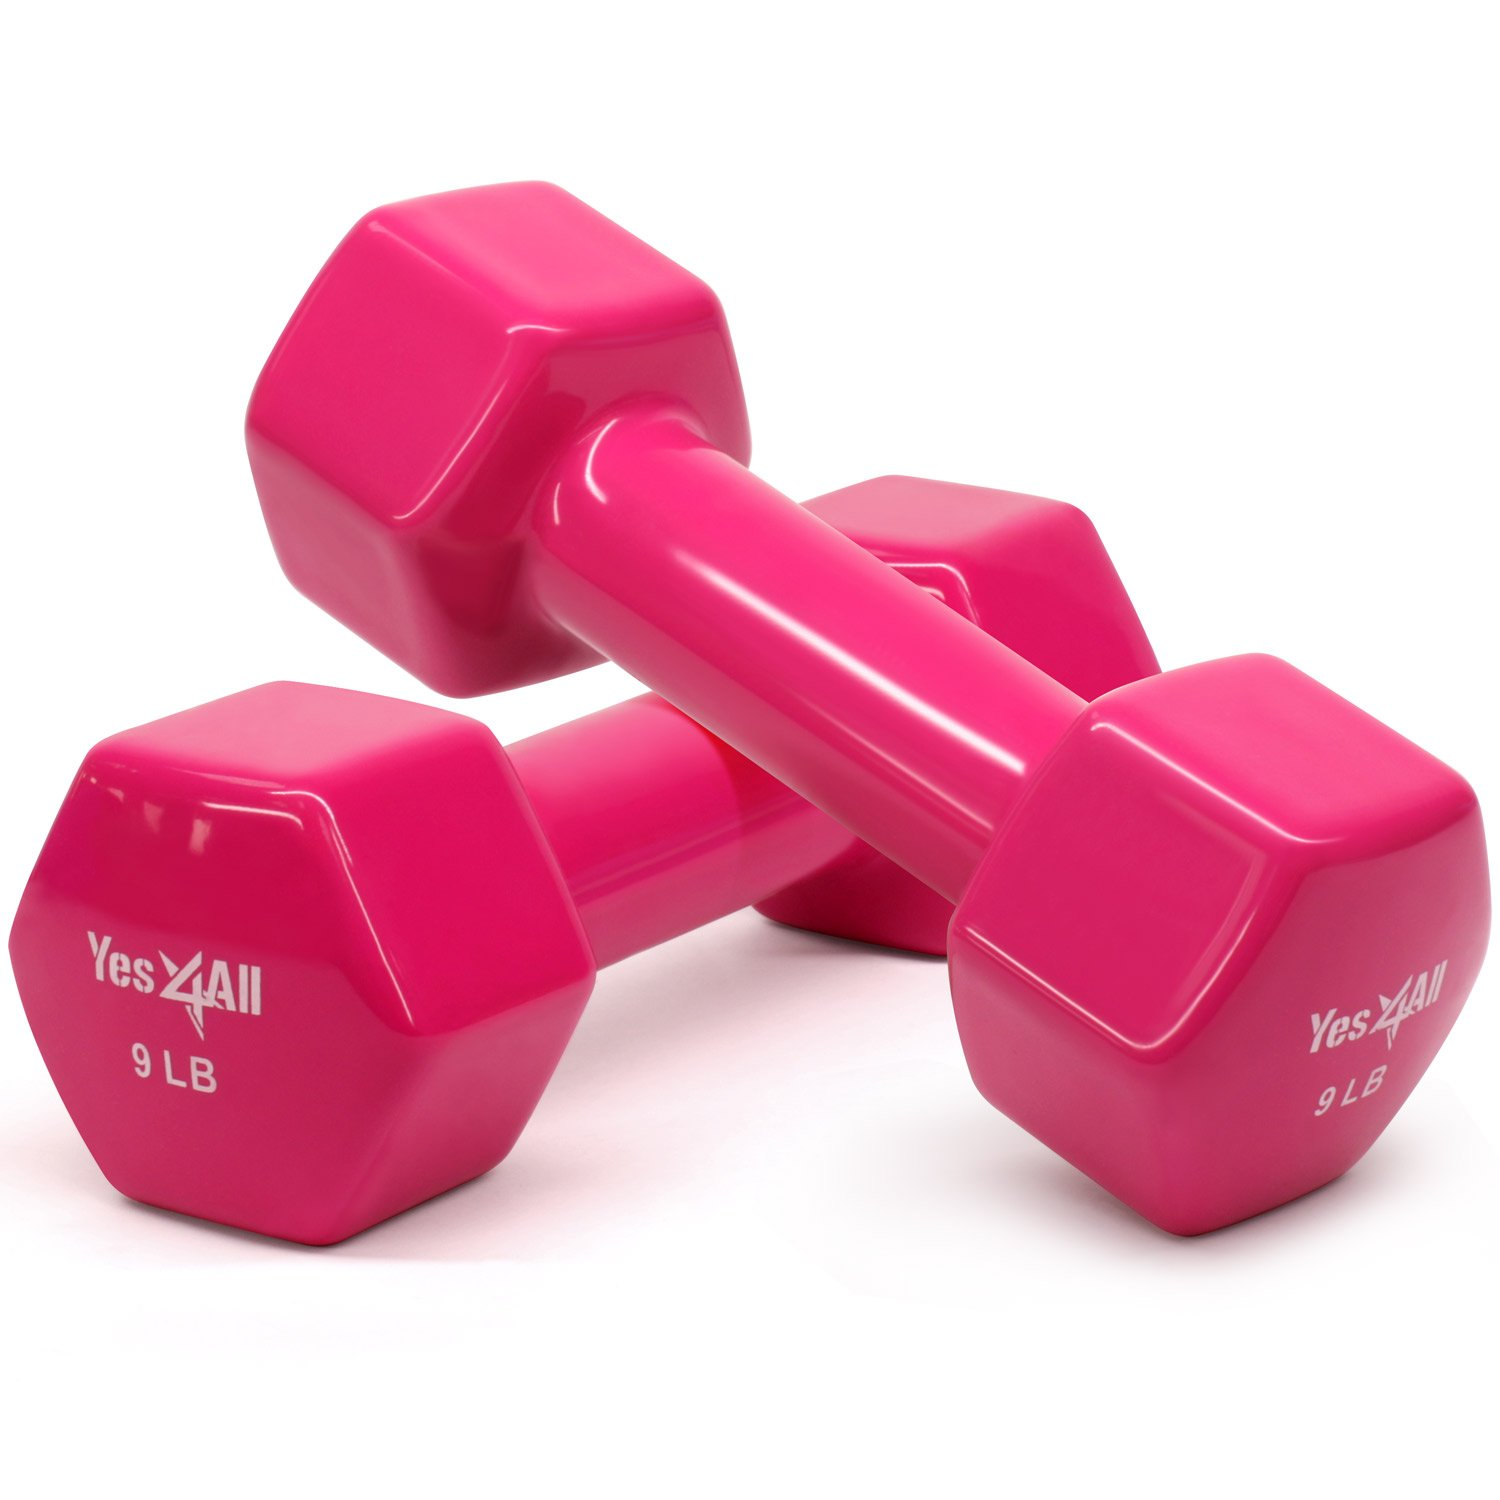 Sold in Pair Yes4All PVC Dumbbells